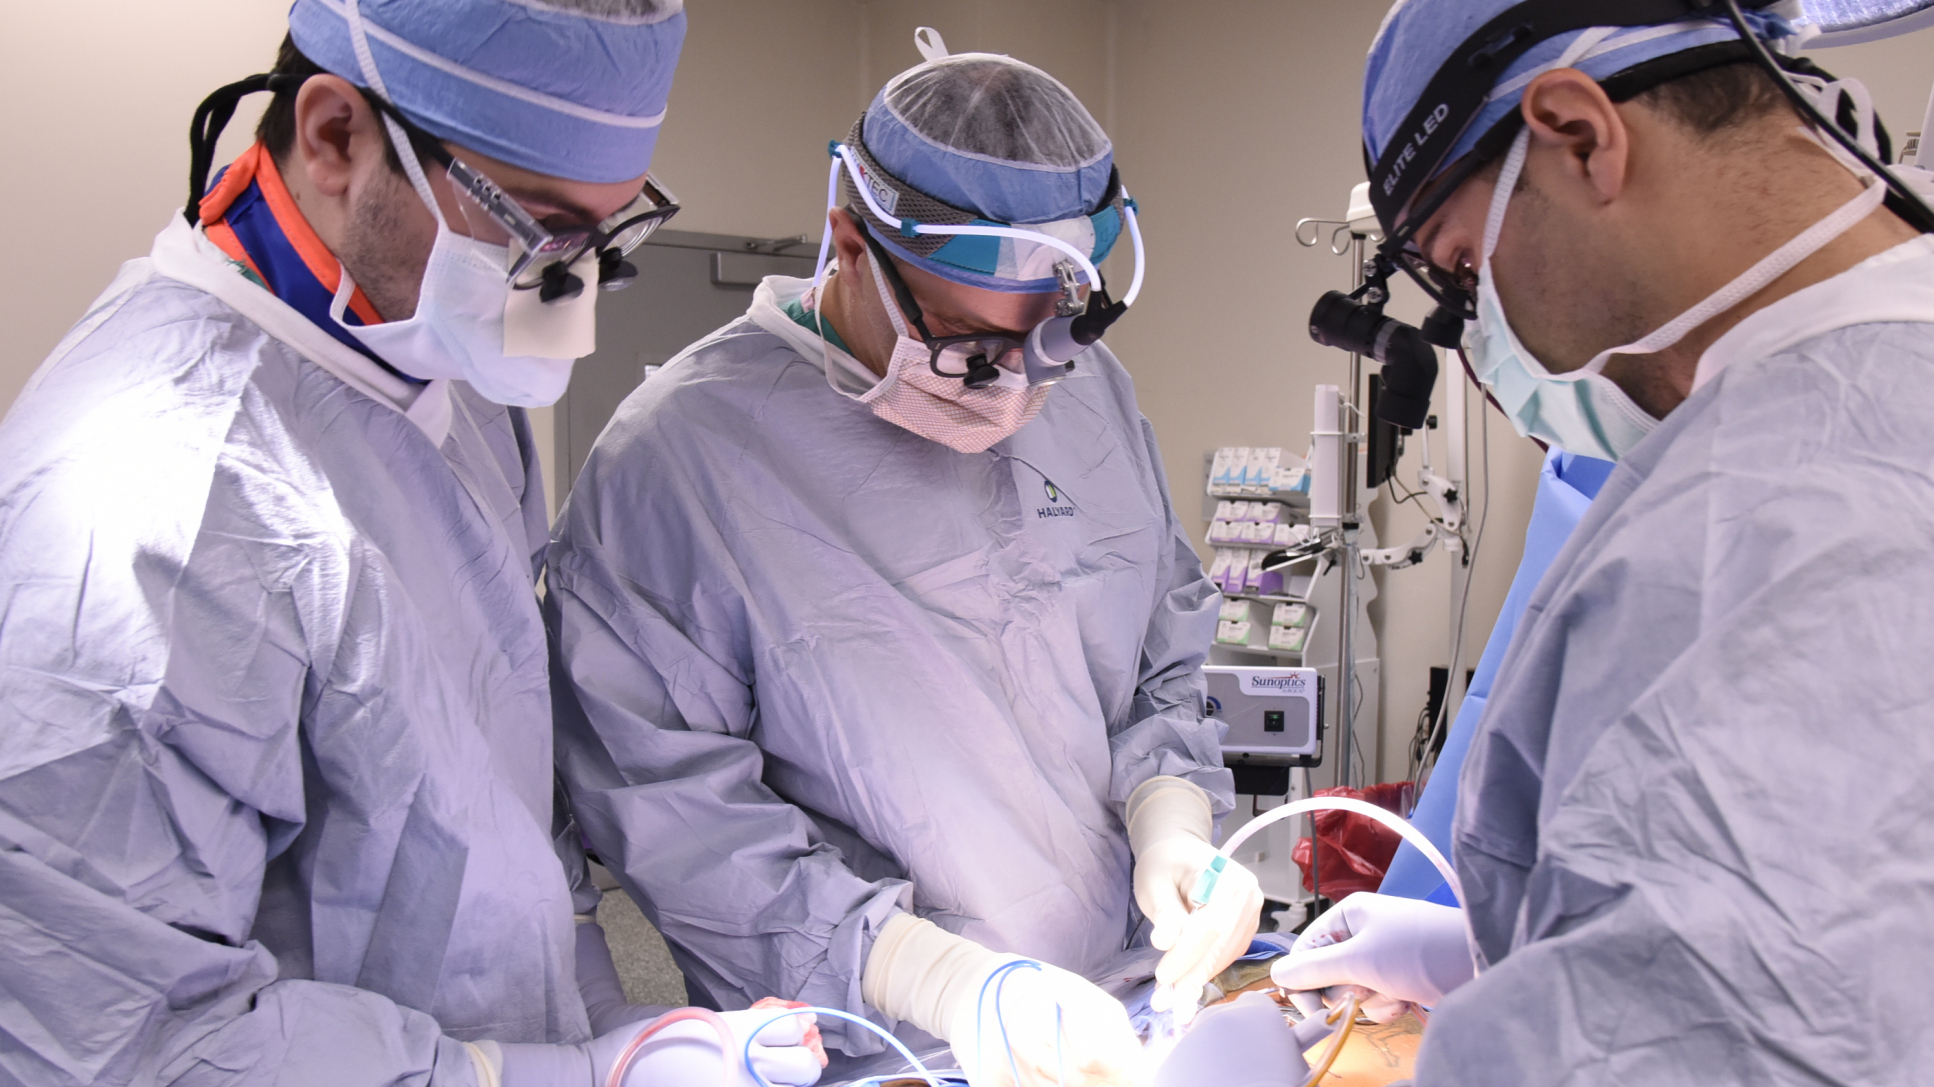 UF orthopaedic surgery resident observes UF faculty neurosurgeons.